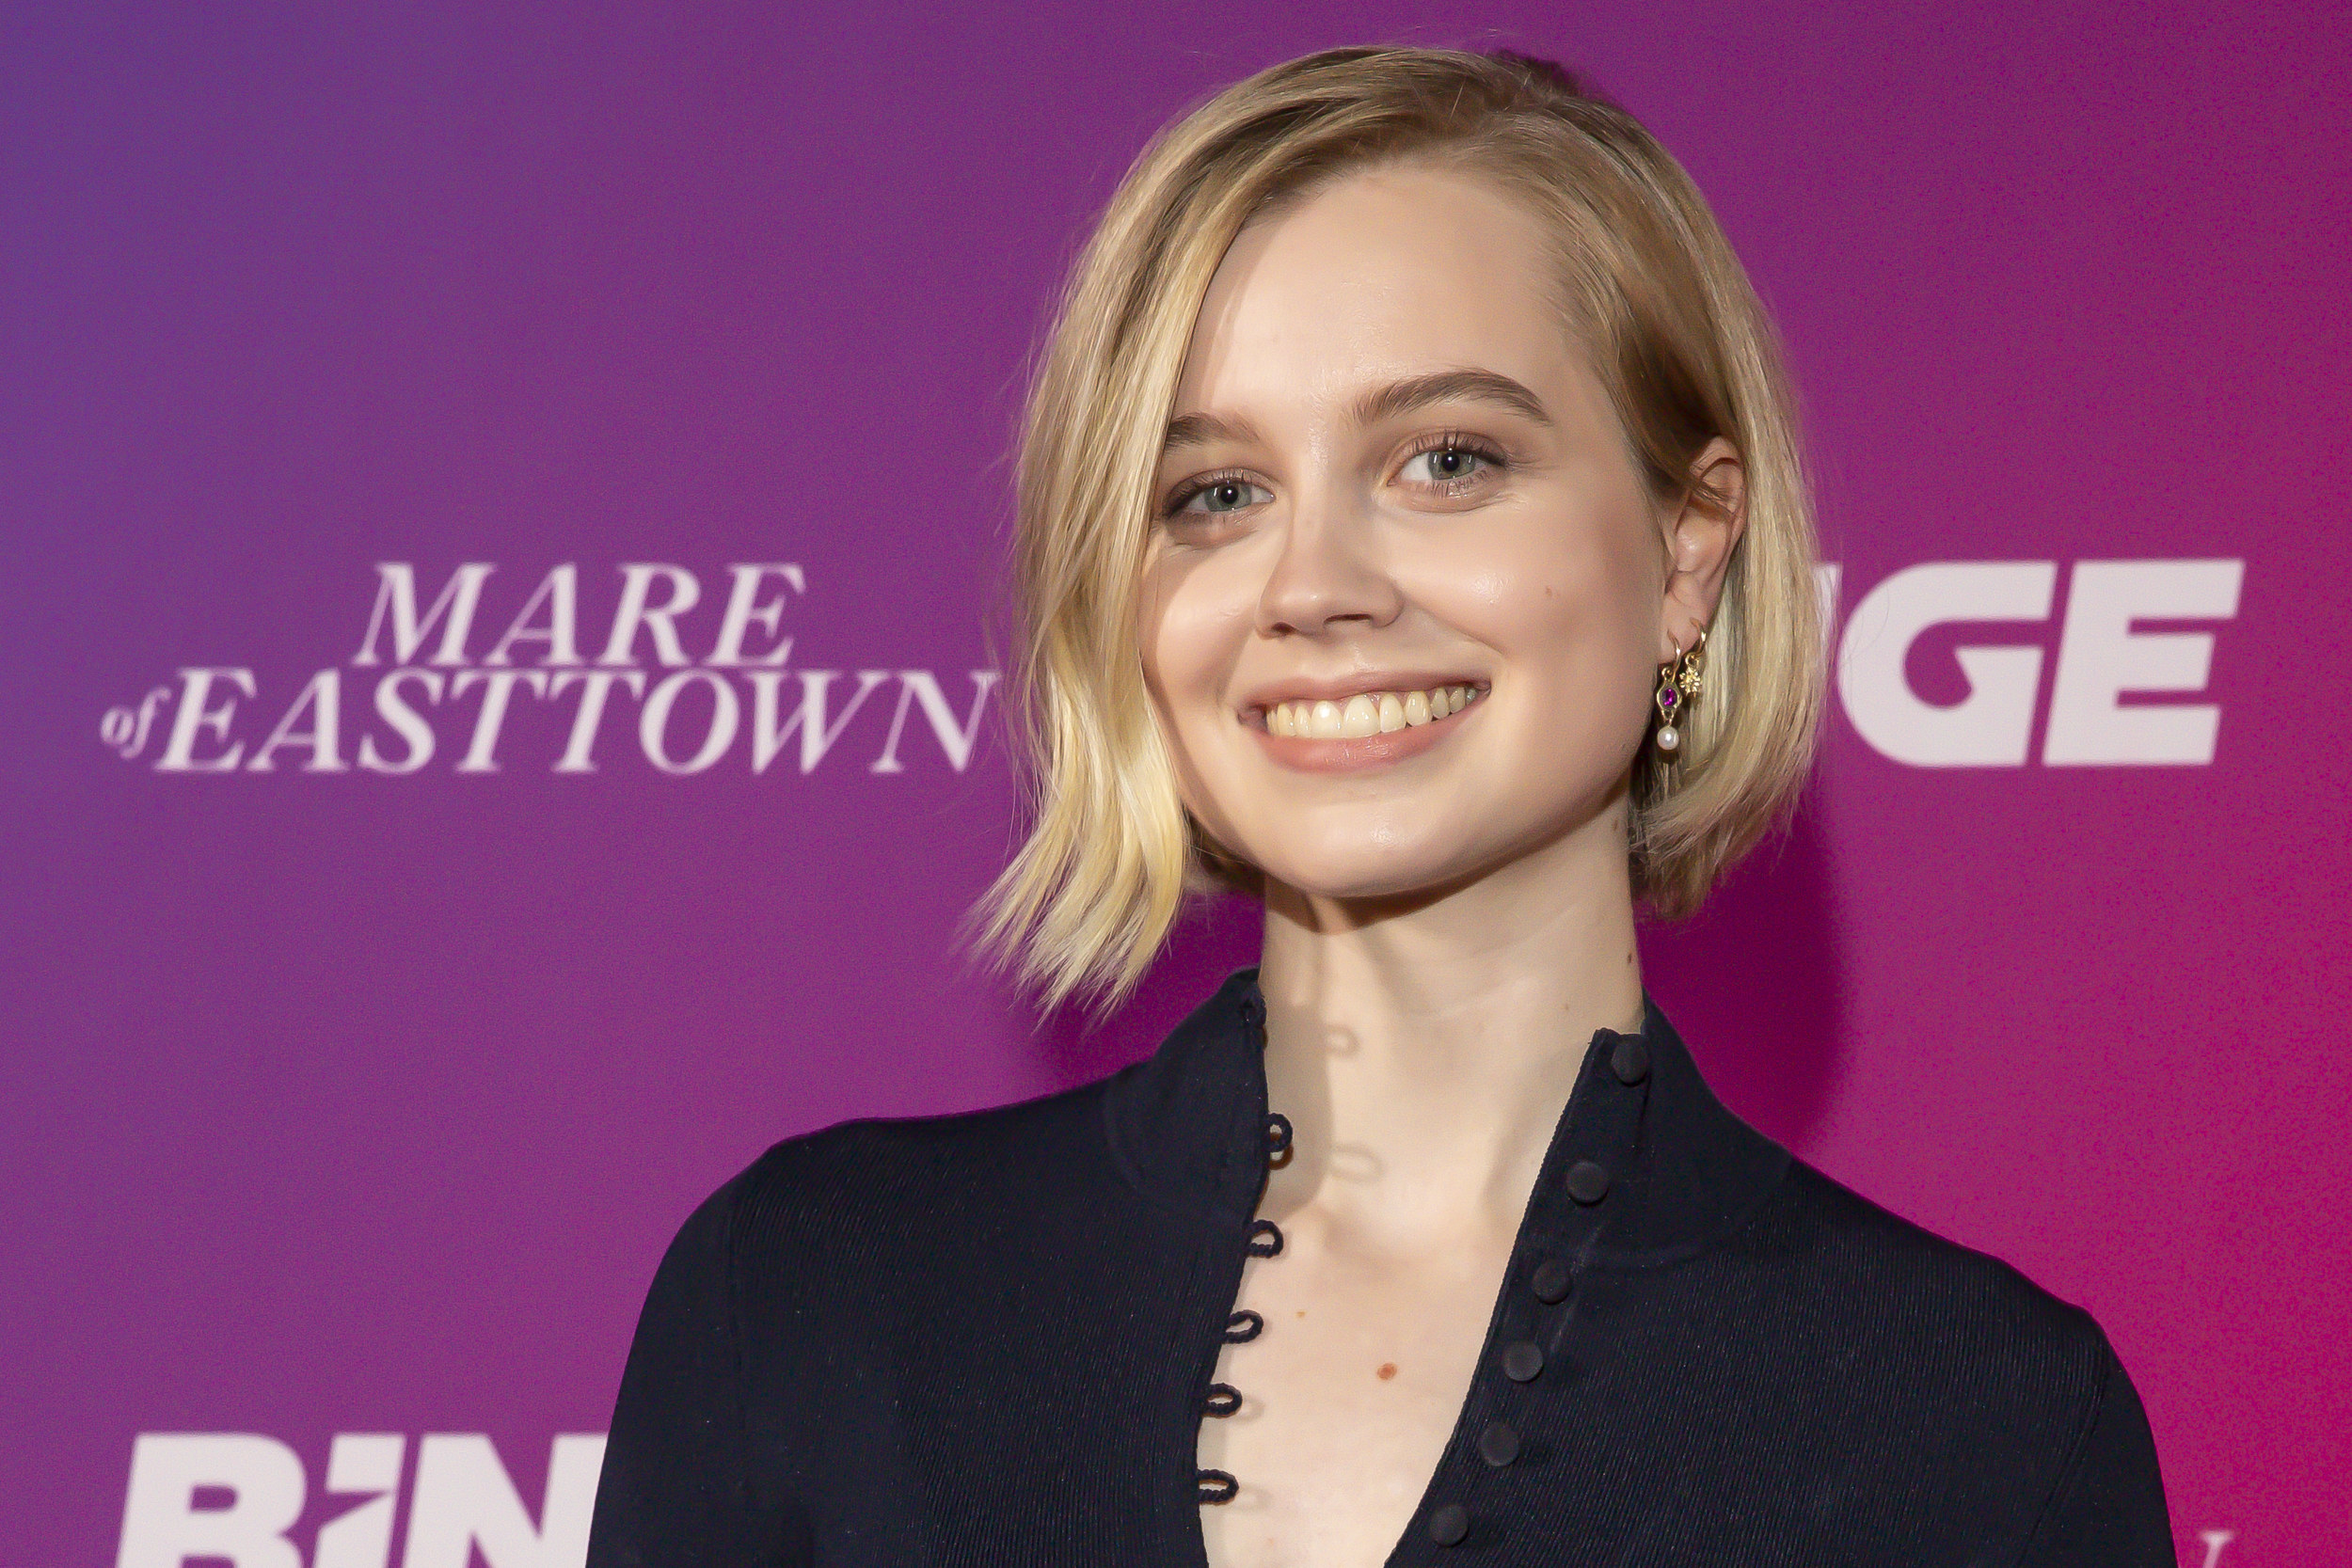 Angourie Rice at a Mare of Easttown event